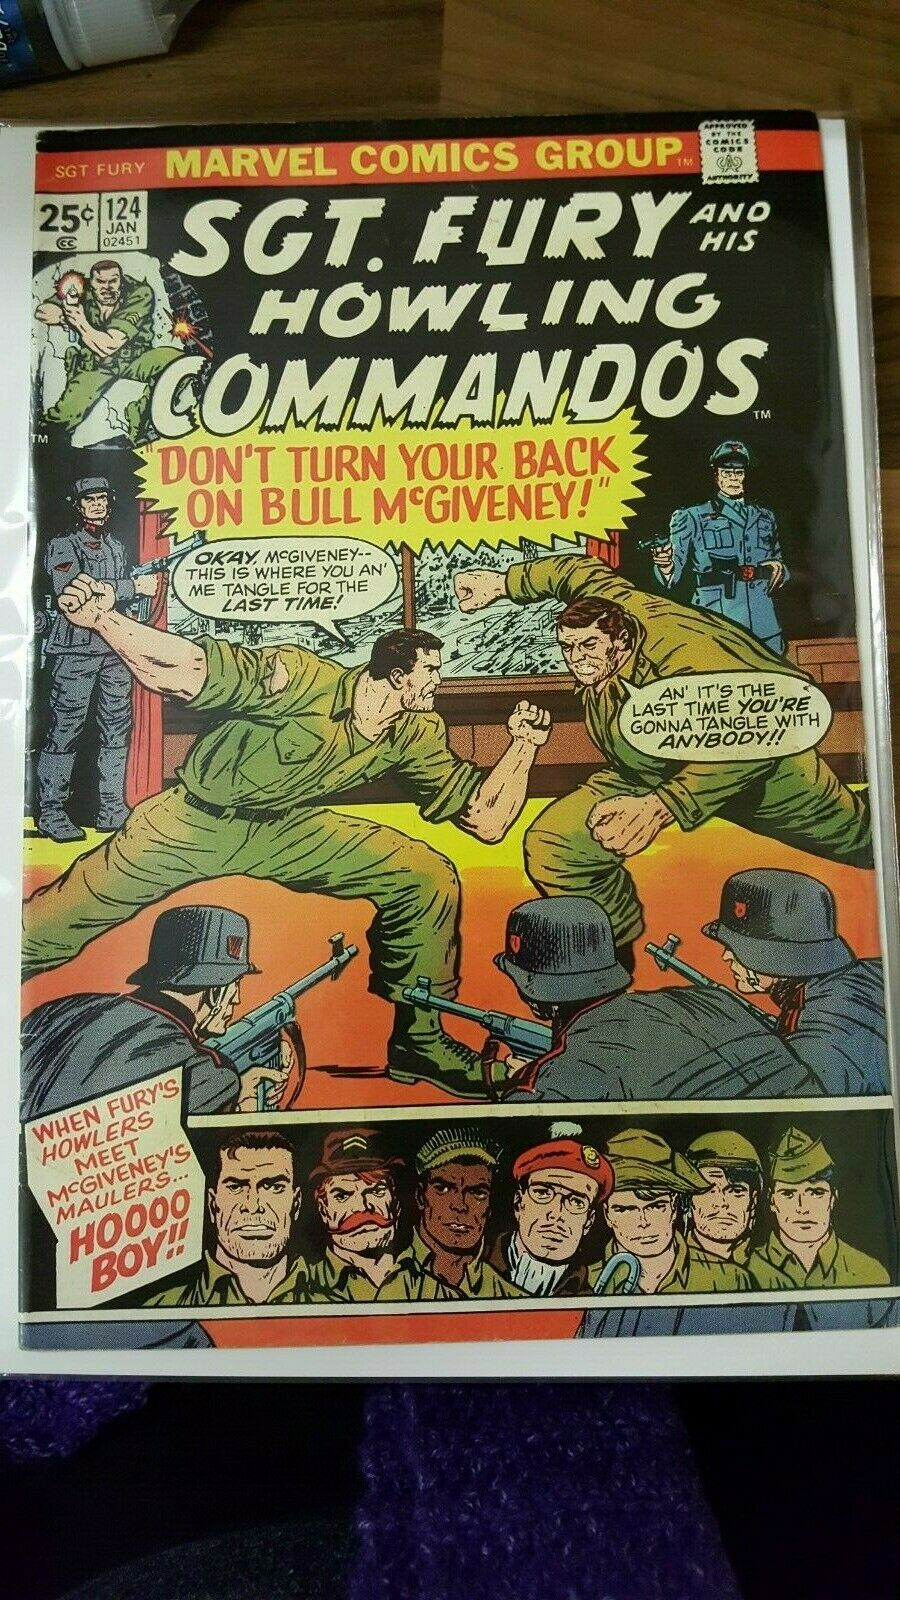 Sgt. Fury and His Howling Commandos #124